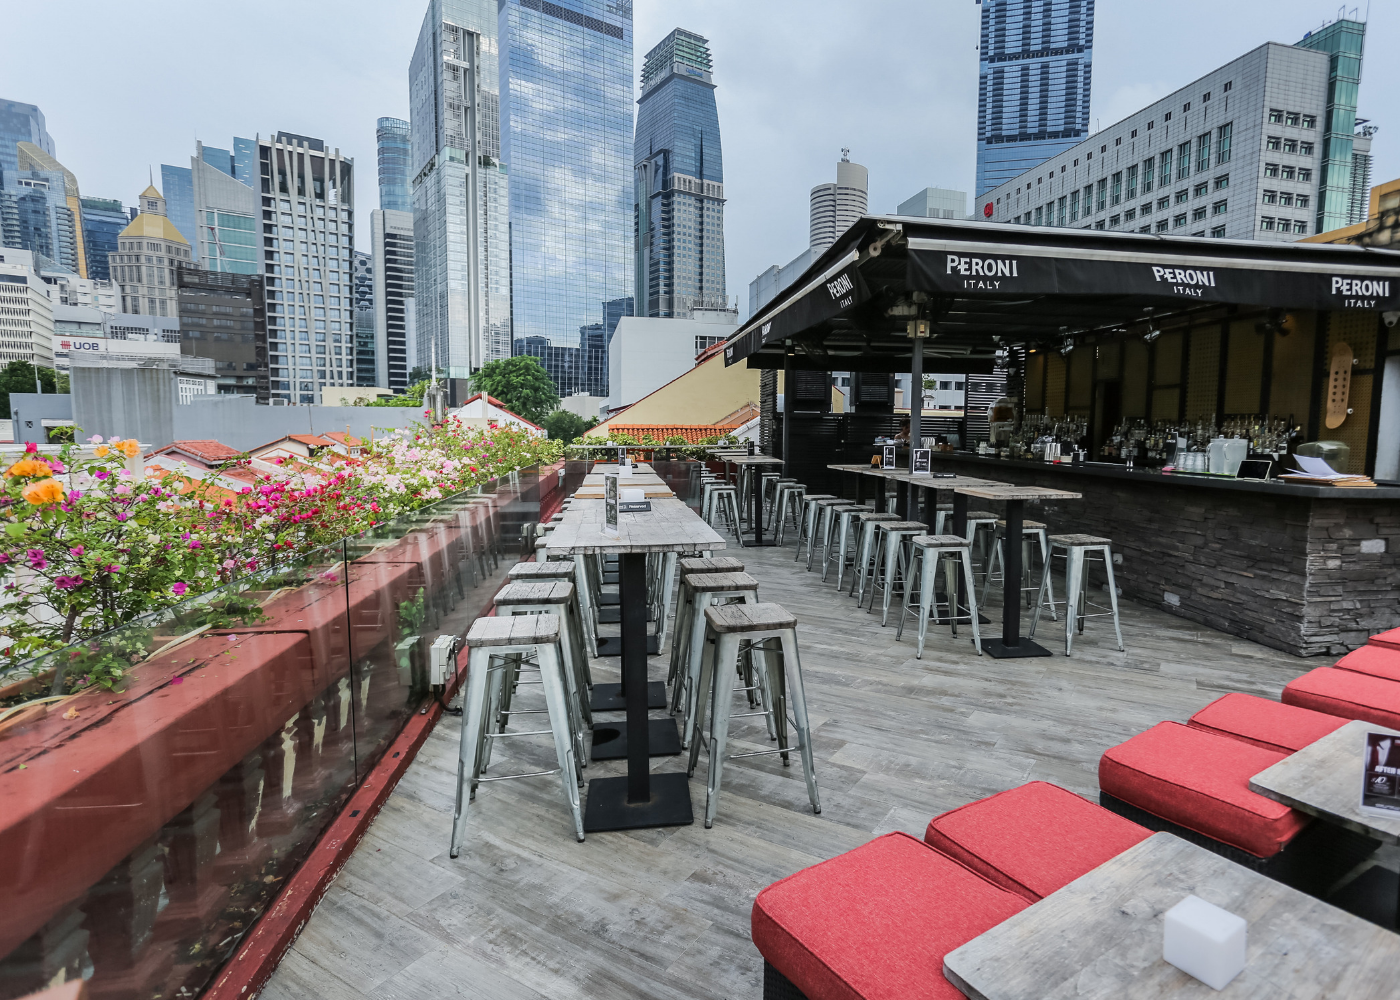 The Screening Room is a rooftop bar in Chinatown